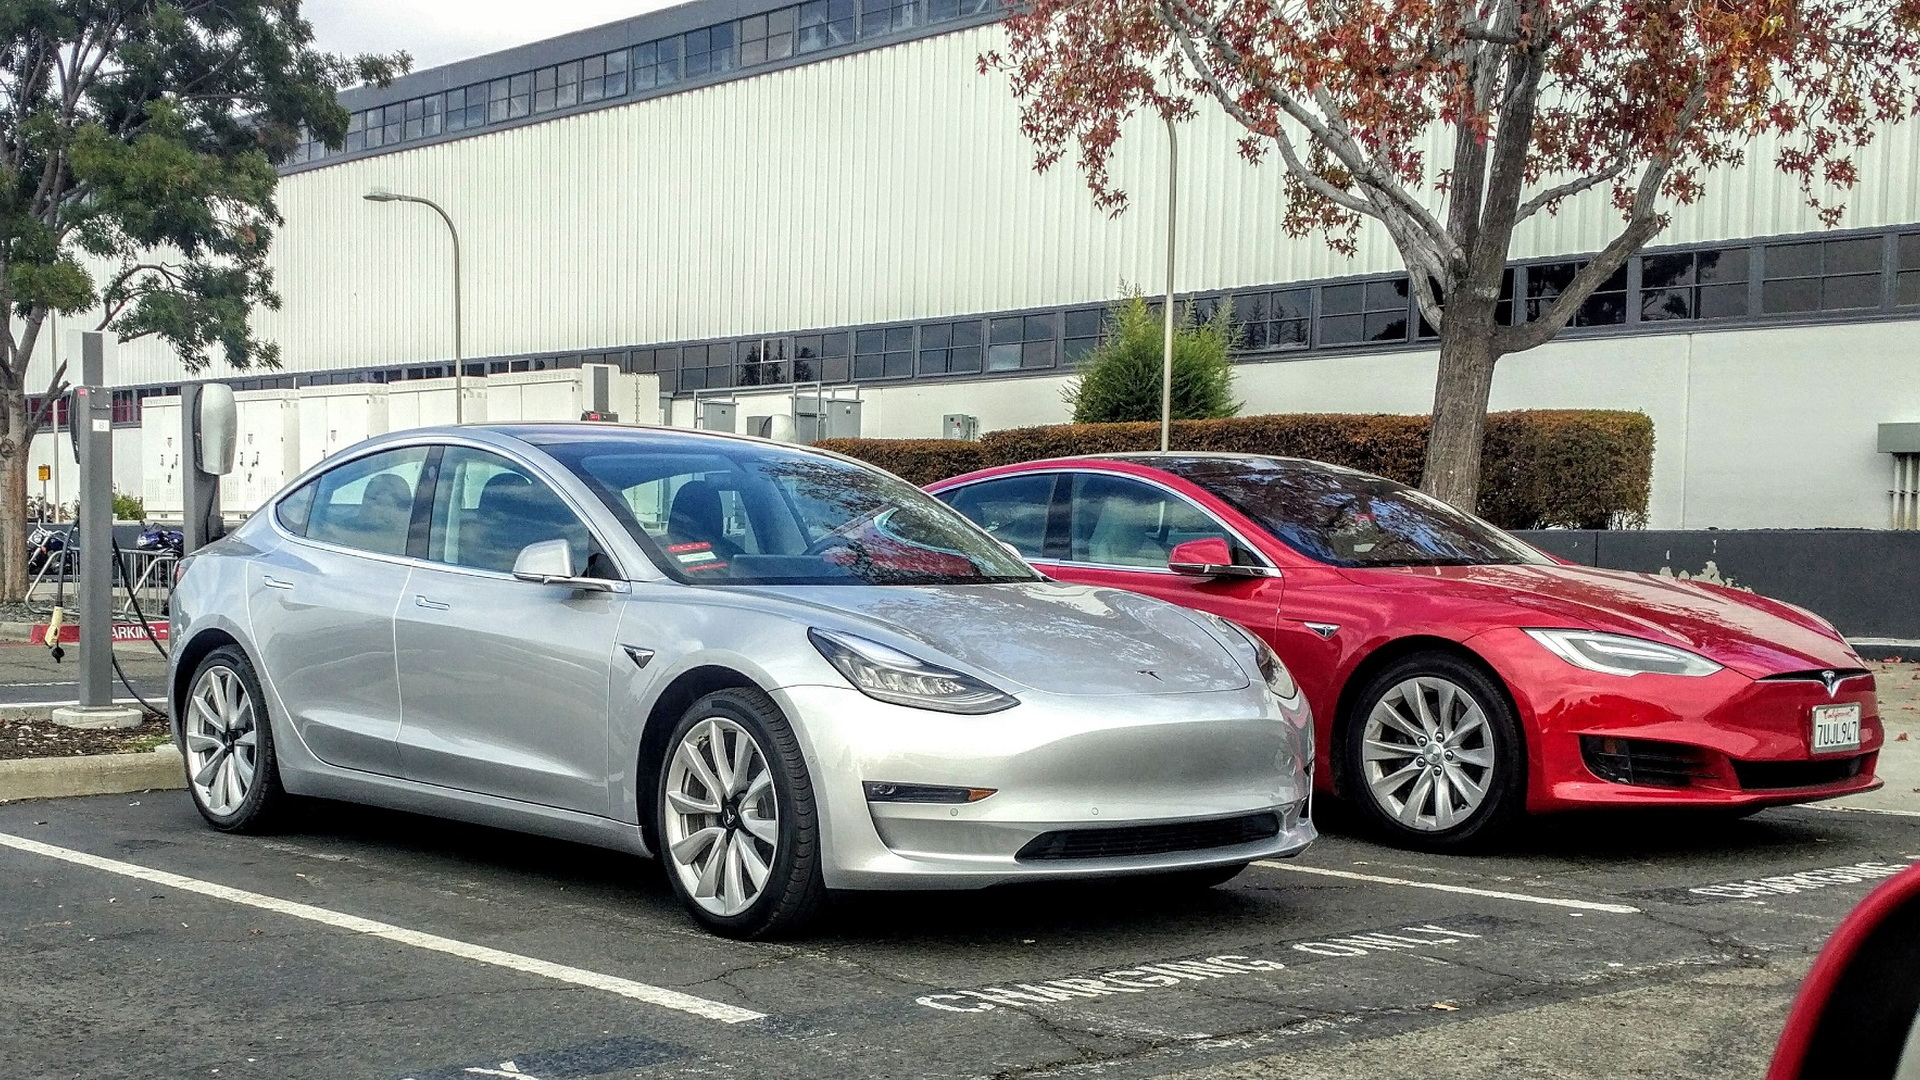 Tesla delivers 1,550 Model 3s in Q4